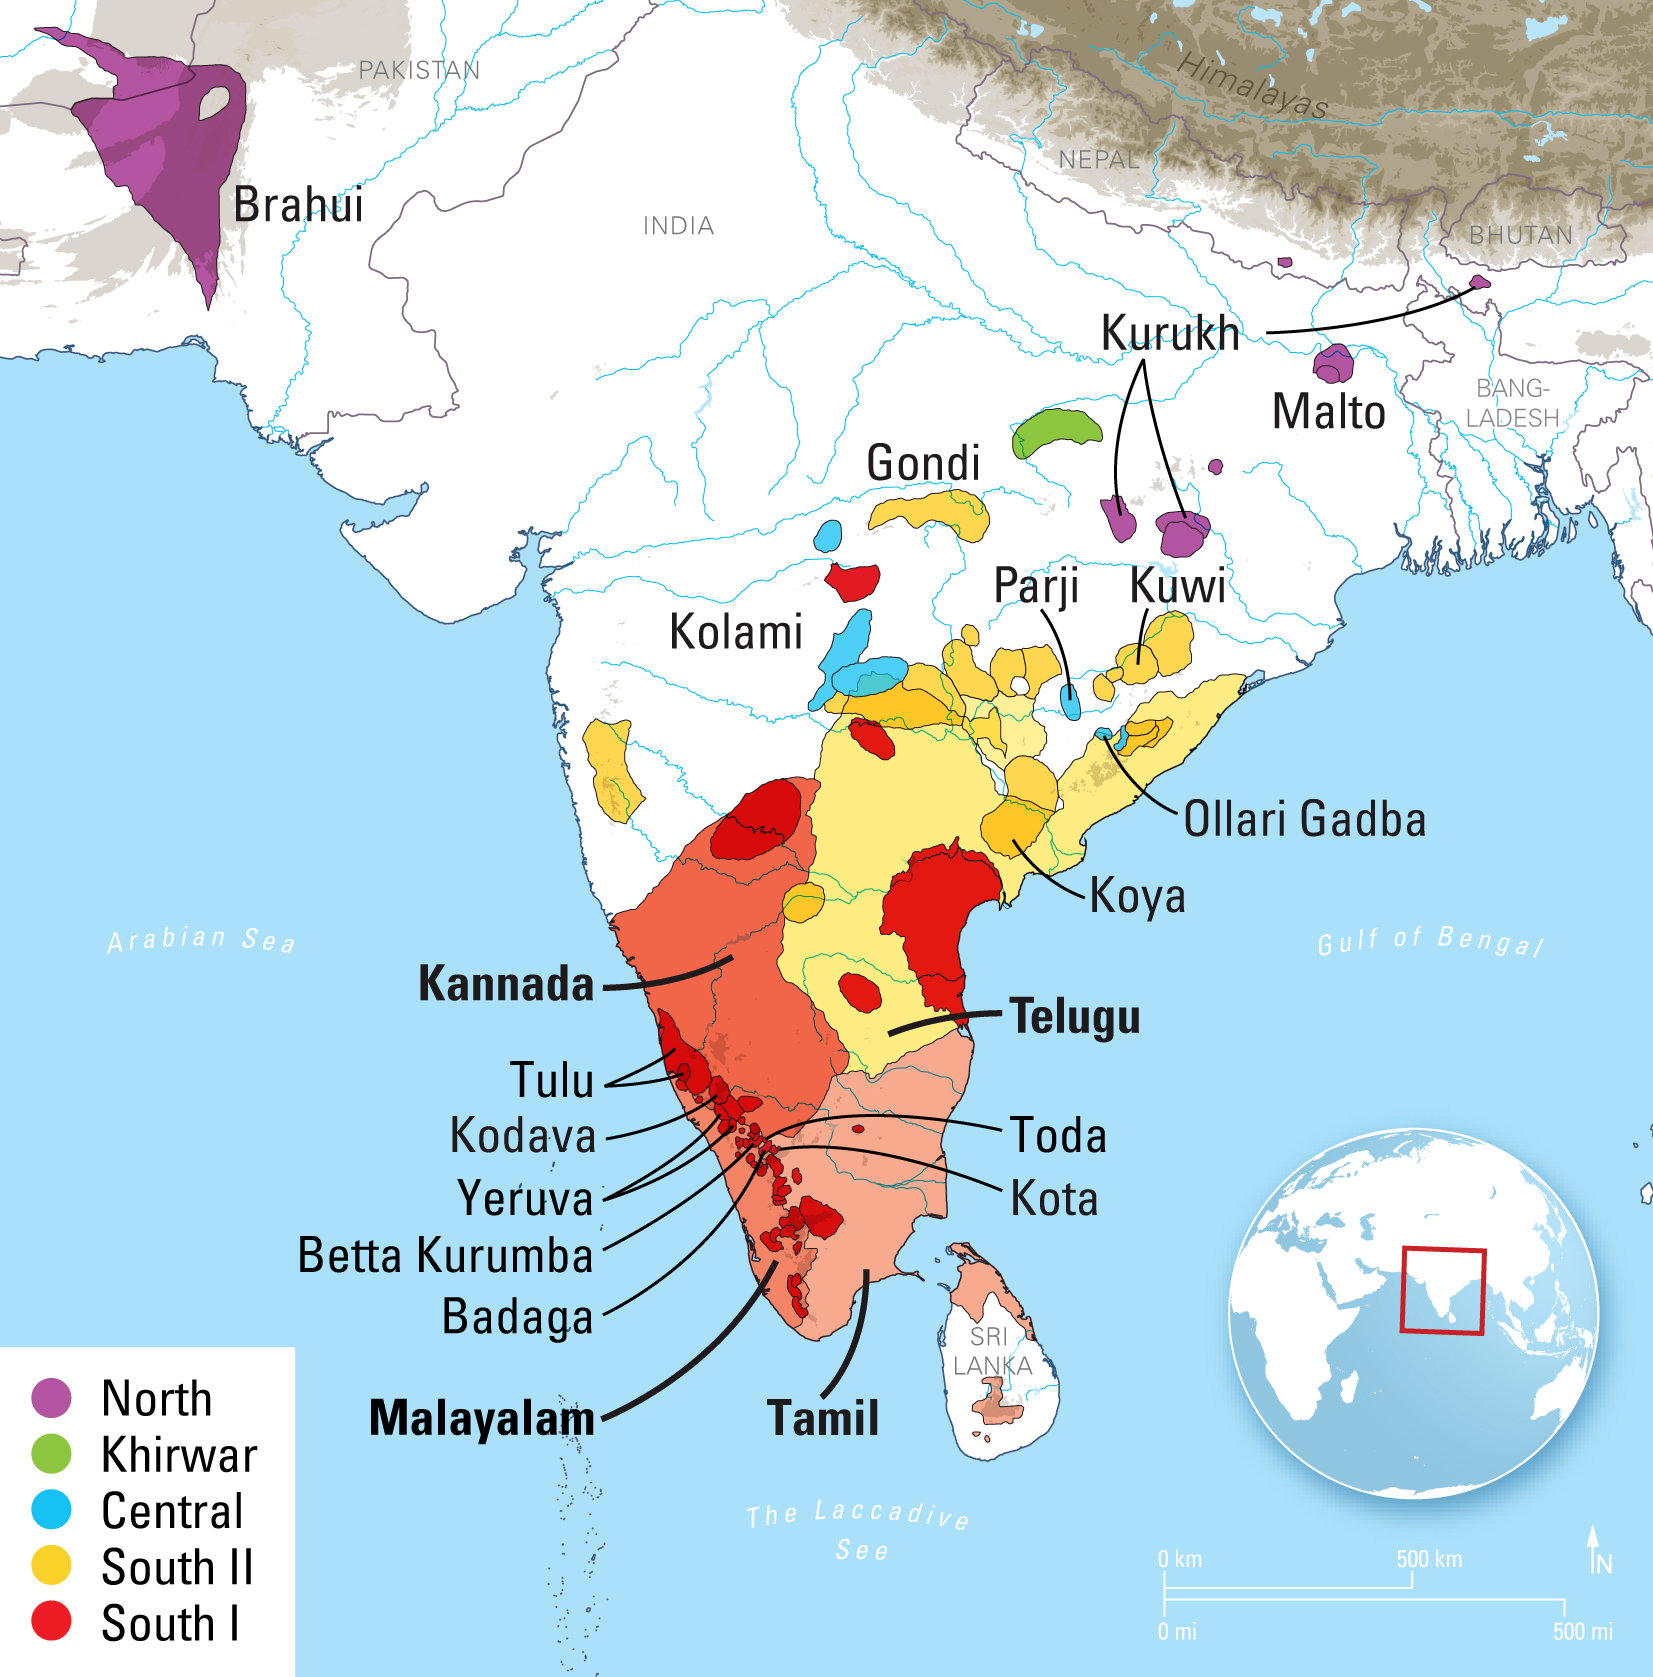 New Linguistic Analysis Finds Dravidian Language Family Is